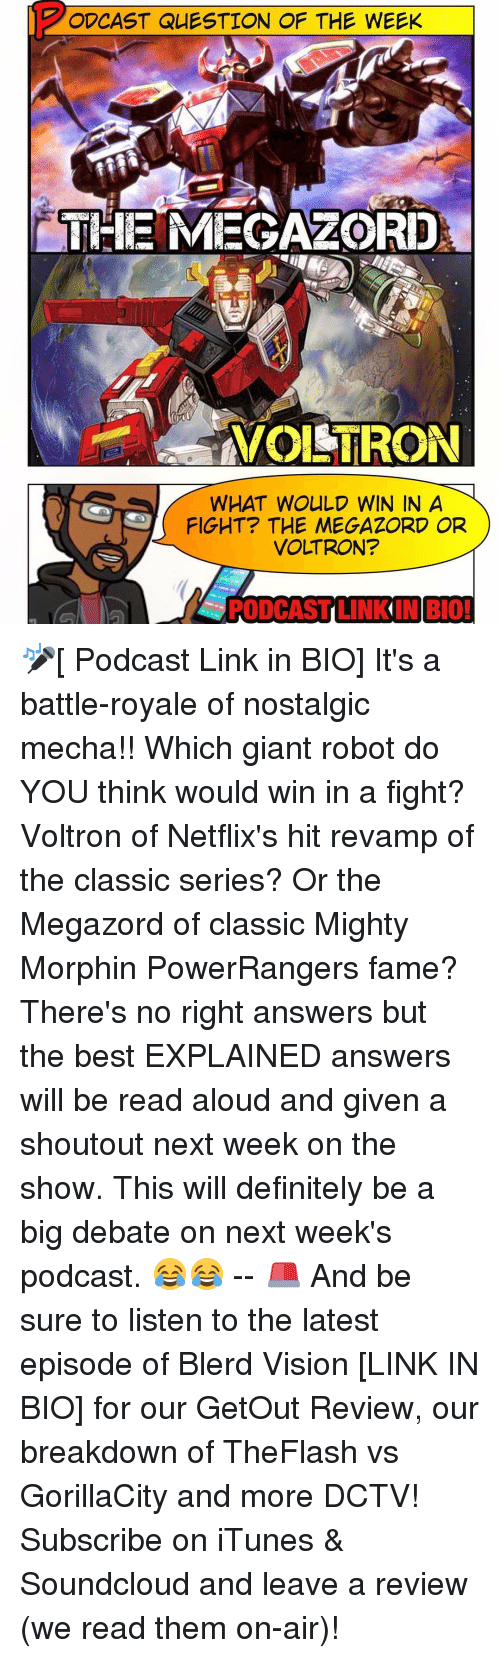 Memes, SoundCloud, and Giant: ODCAST QUESTION OF THE WEEK  THE MEGA LORD  NVOISTRON  WHAT WOULD WIN IN A  FIGHT THE MEGAZORD OR  VOLTRON?  PODCAST LINK IN BIO! 🎤[ Podcast Link in BIO] It's a battle-royale of nostalgic mecha!! Which giant robot do YOU think would win in a fight? Voltron of Netflix's hit revamp of the classic series? Or the Megazord of classic Mighty Morphin PowerRangers fame? There's no right answers but the best EXPLAINED answers will be read aloud and given a shoutout next week on the show. This will definitely be a big debate on next week's podcast. 😂😂 -- 🚨 And be sure to listen to the latest episode of Blerd Vision [LINK IN BIO] for our GetOut Review, our breakdown of TheFlash vs GorillaCity and more DCTV! Subscribe on iTunes & Soundcloud and leave a review (we read them on-air)!